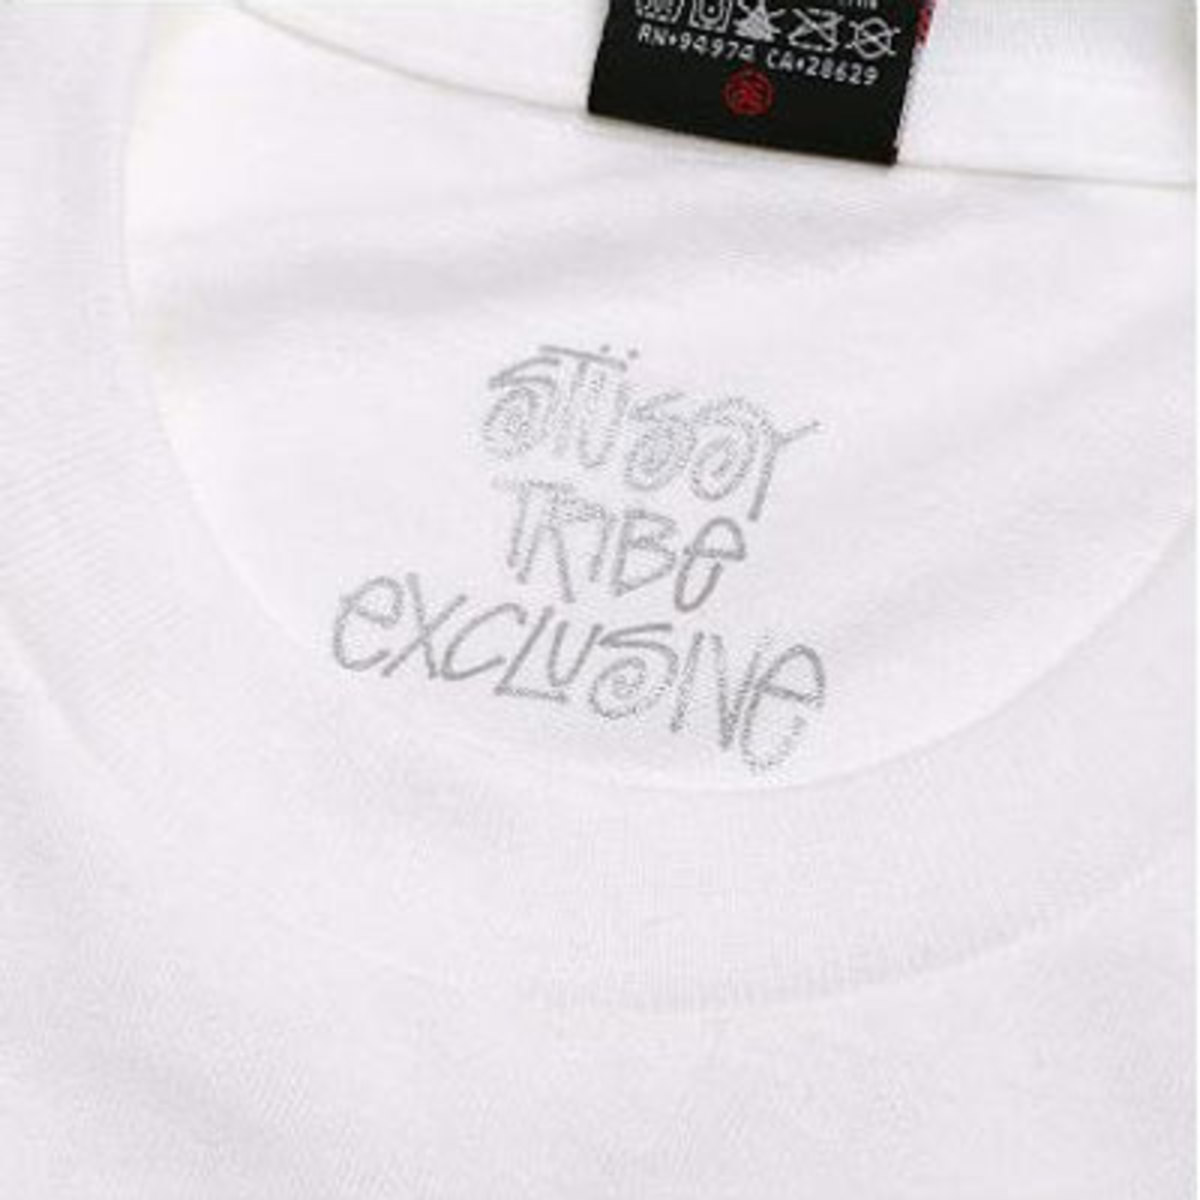 ss-tribe-exclusive-t-shirt-2